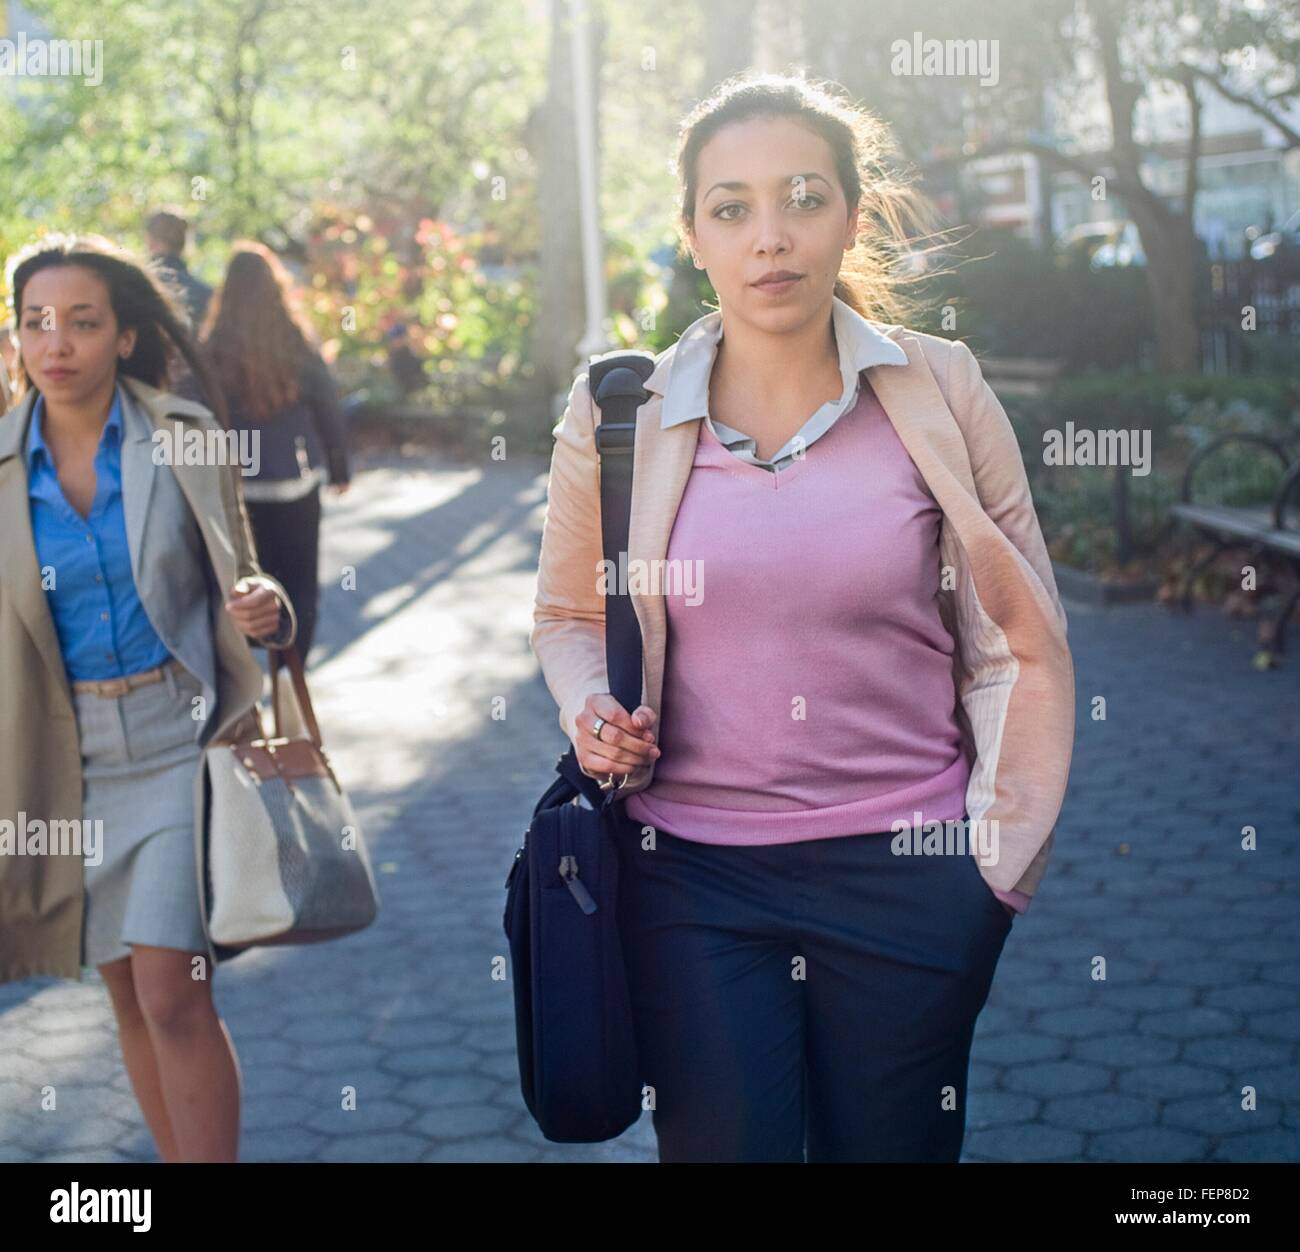 Young woman walking through city park - Stock Image